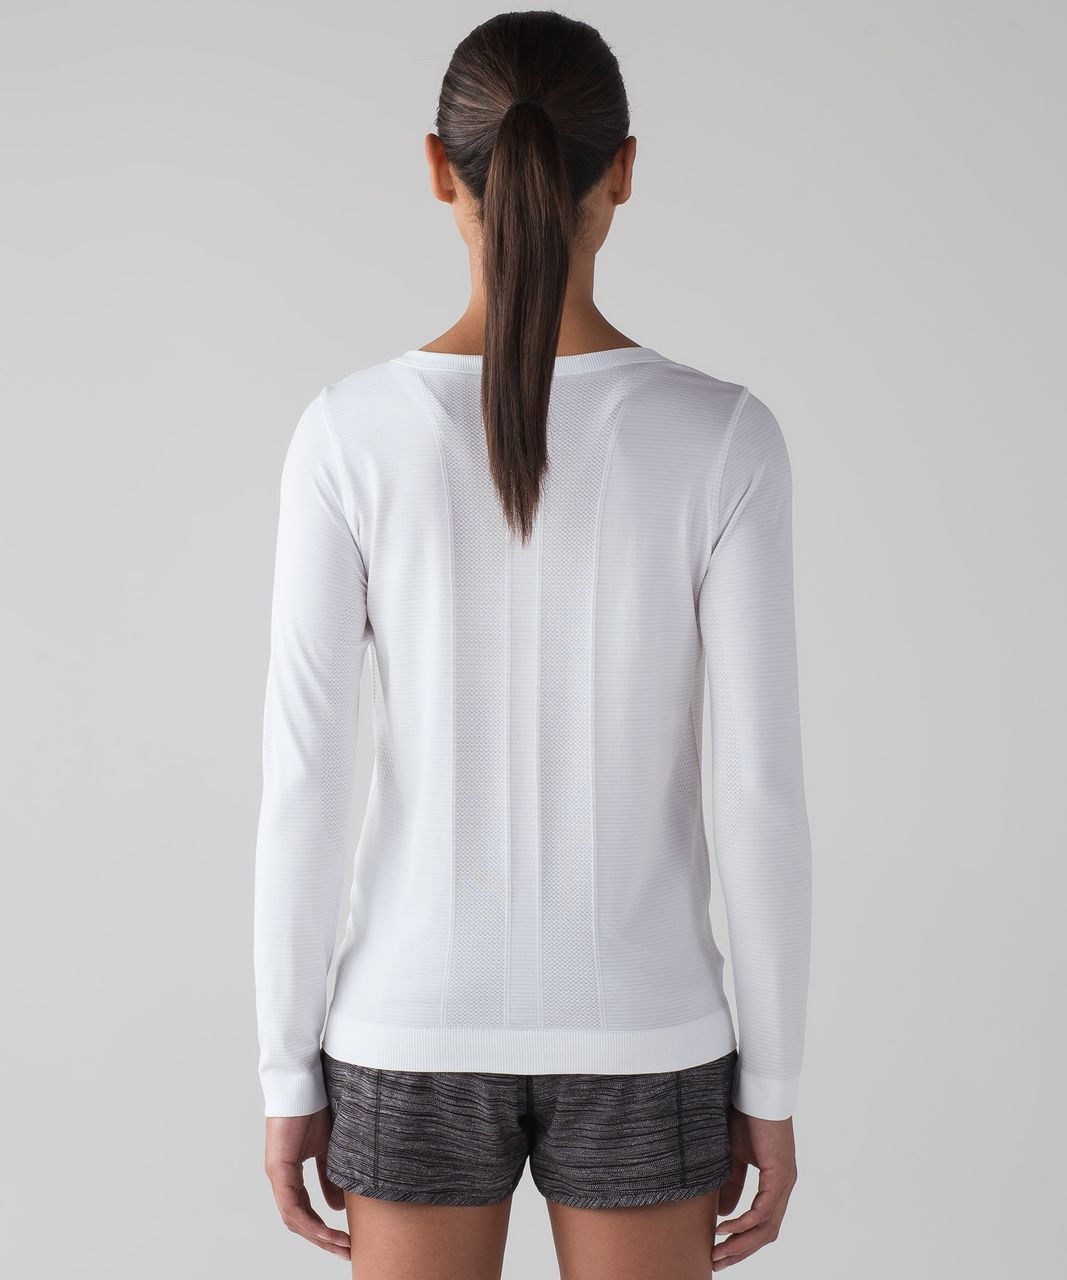 Lululemon Swiftly Tech Long Sleeve (Breeze) *Relaxed Fit - White / White (First Release)